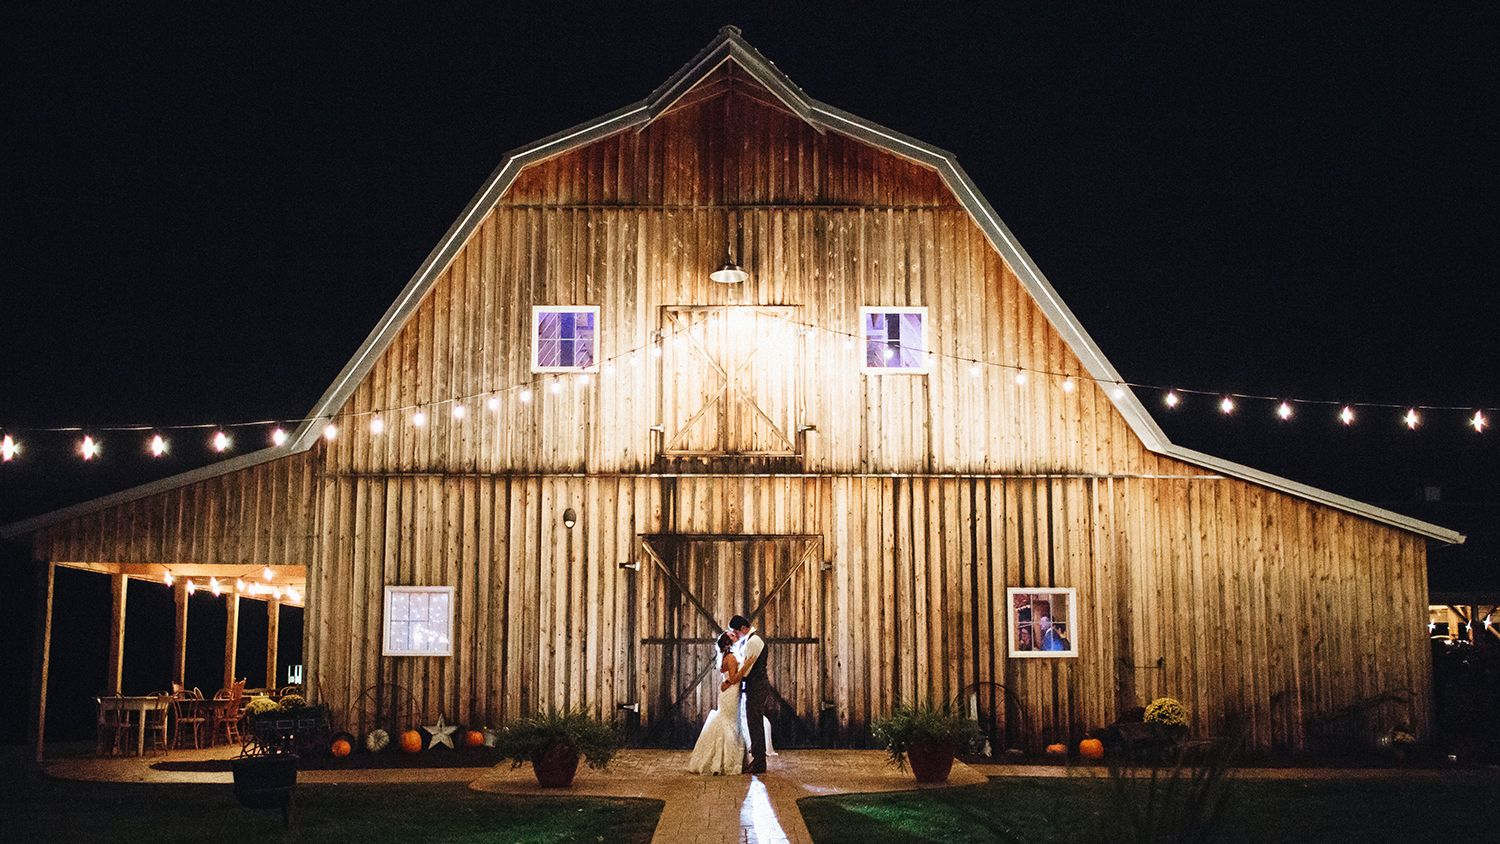 Bride And Groom In Front Of Reception Barn Night Lights